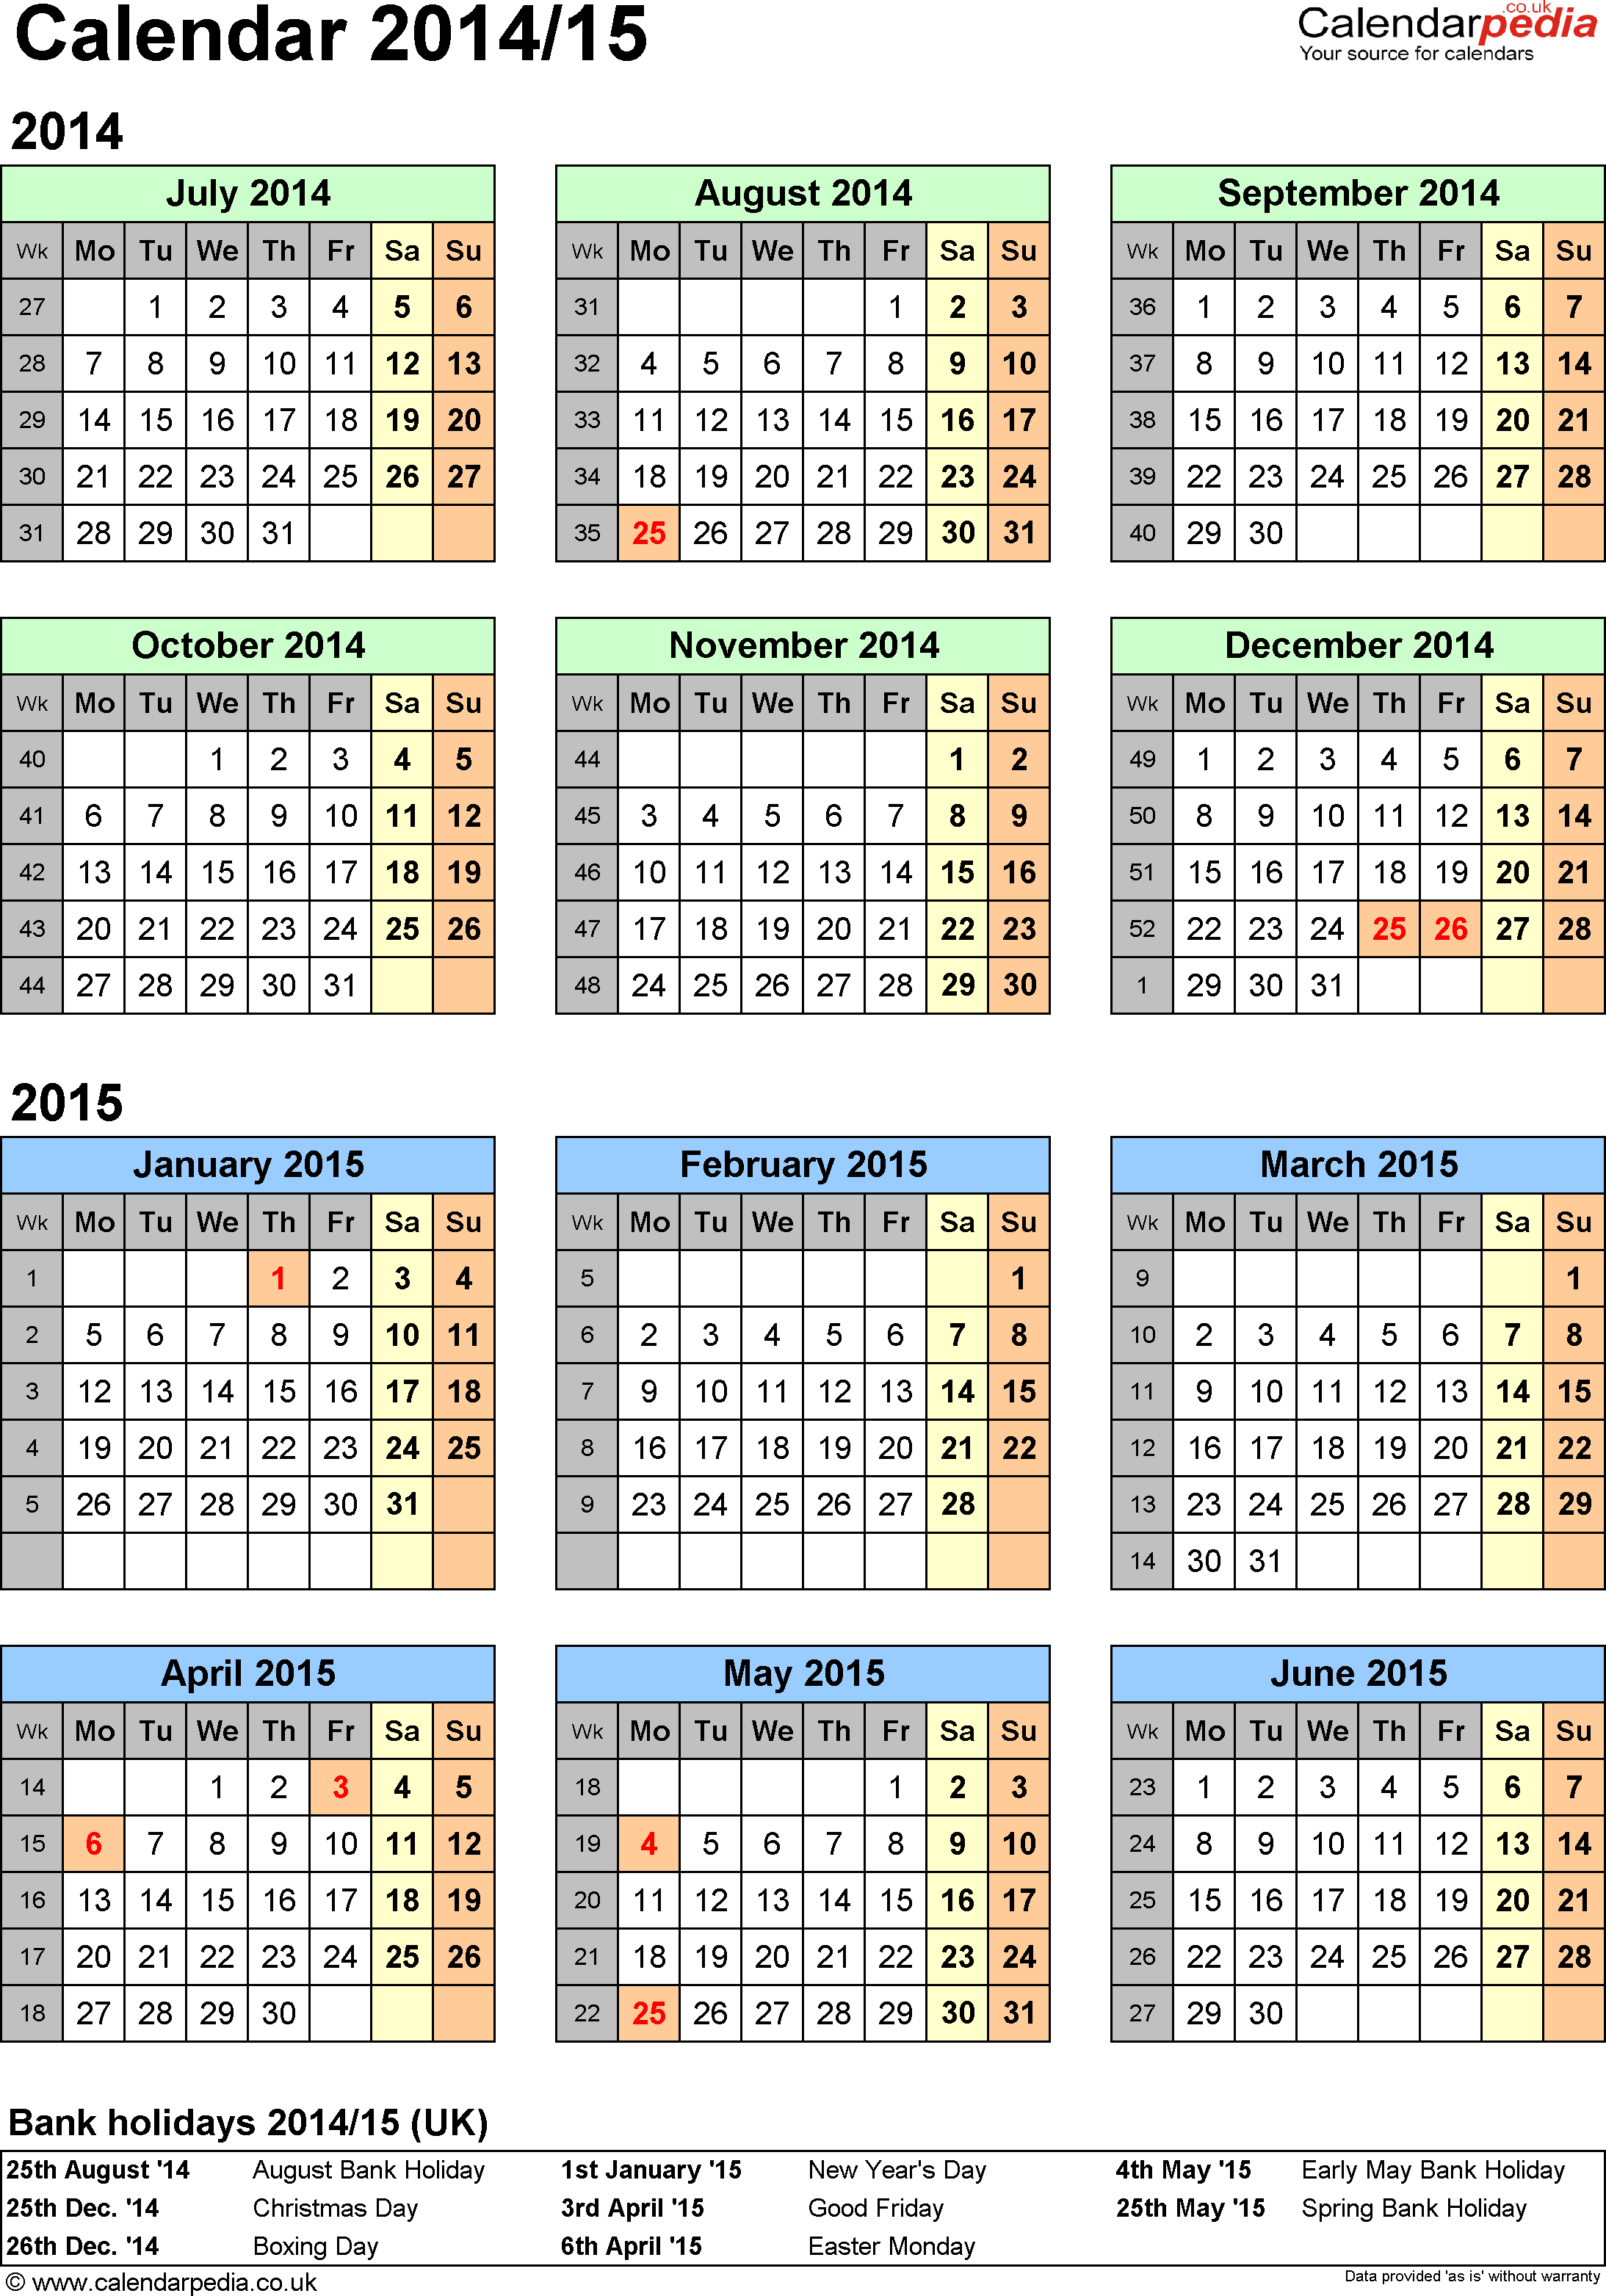 Download Template 2: PDF template for split year calendar 2014/2015 (portrait orientation, 1 page, A4)